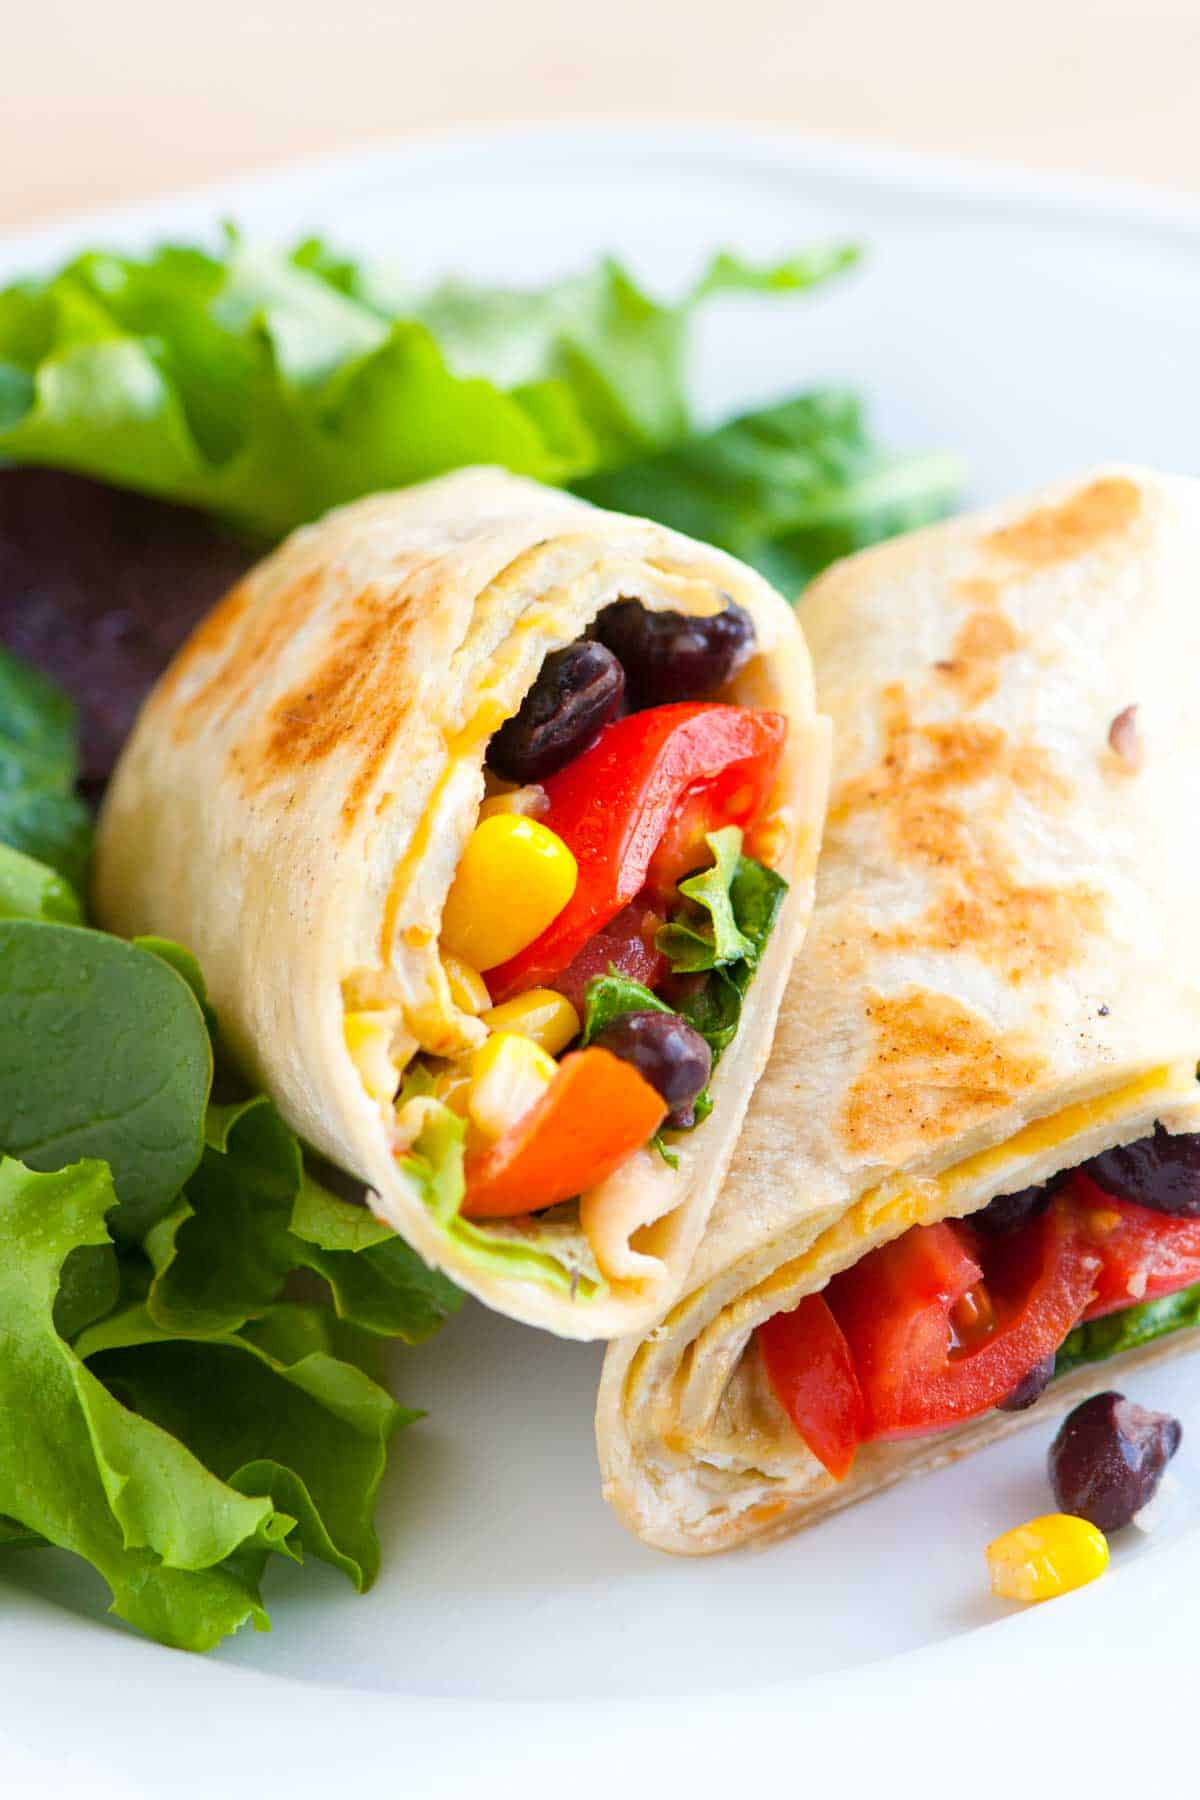 How to Make Vegetarian Wraps with Black Beans and Egg